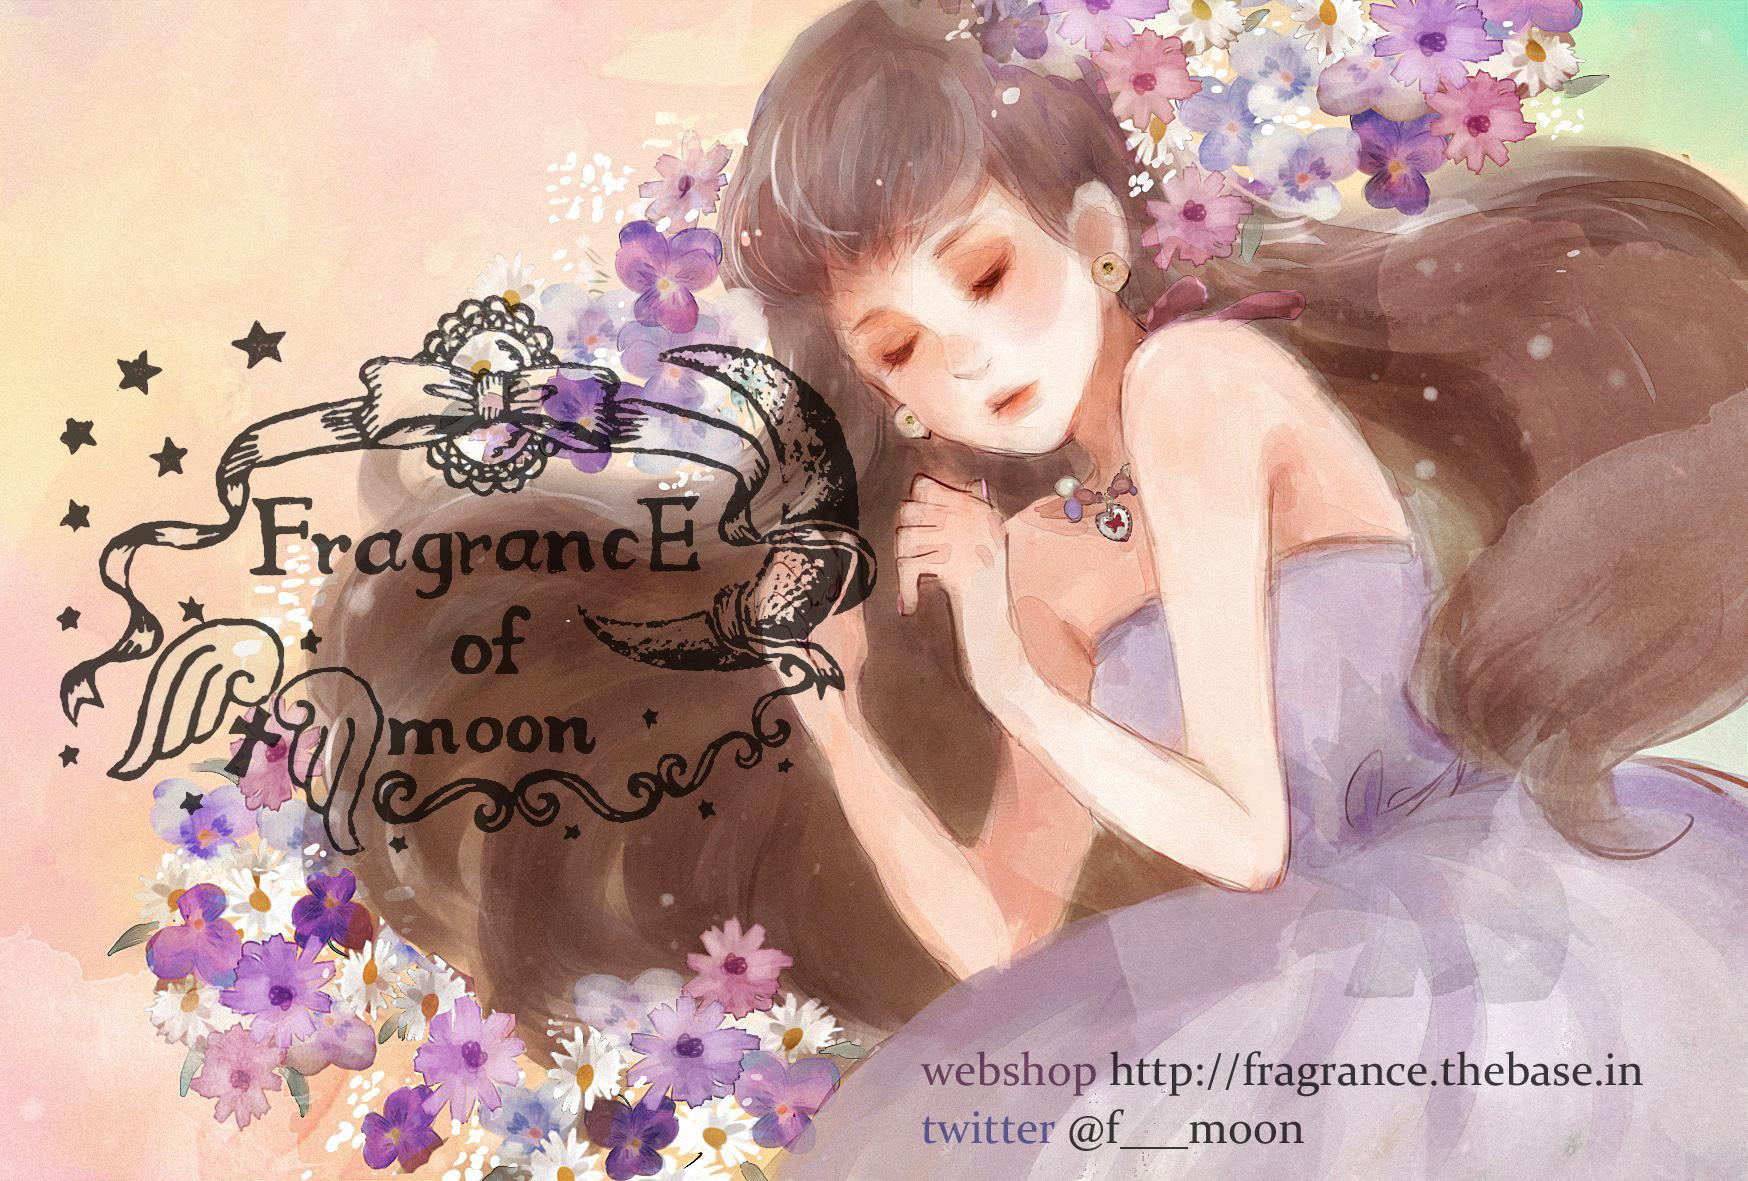 FragrancE of moon